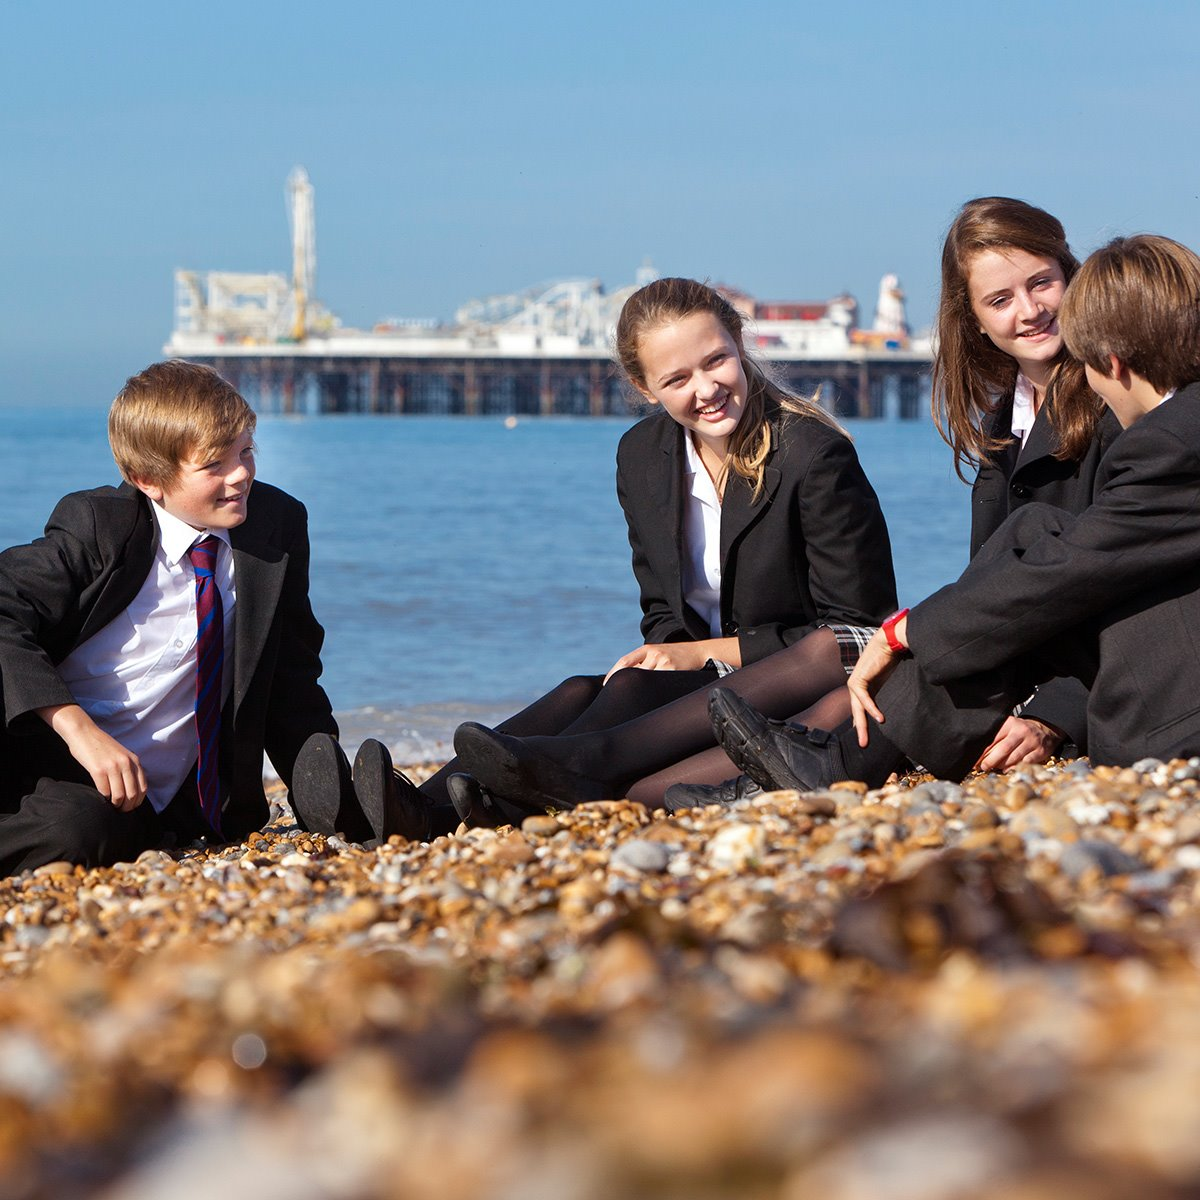 Brighton-College-co-ed-pupils-beach.jpg